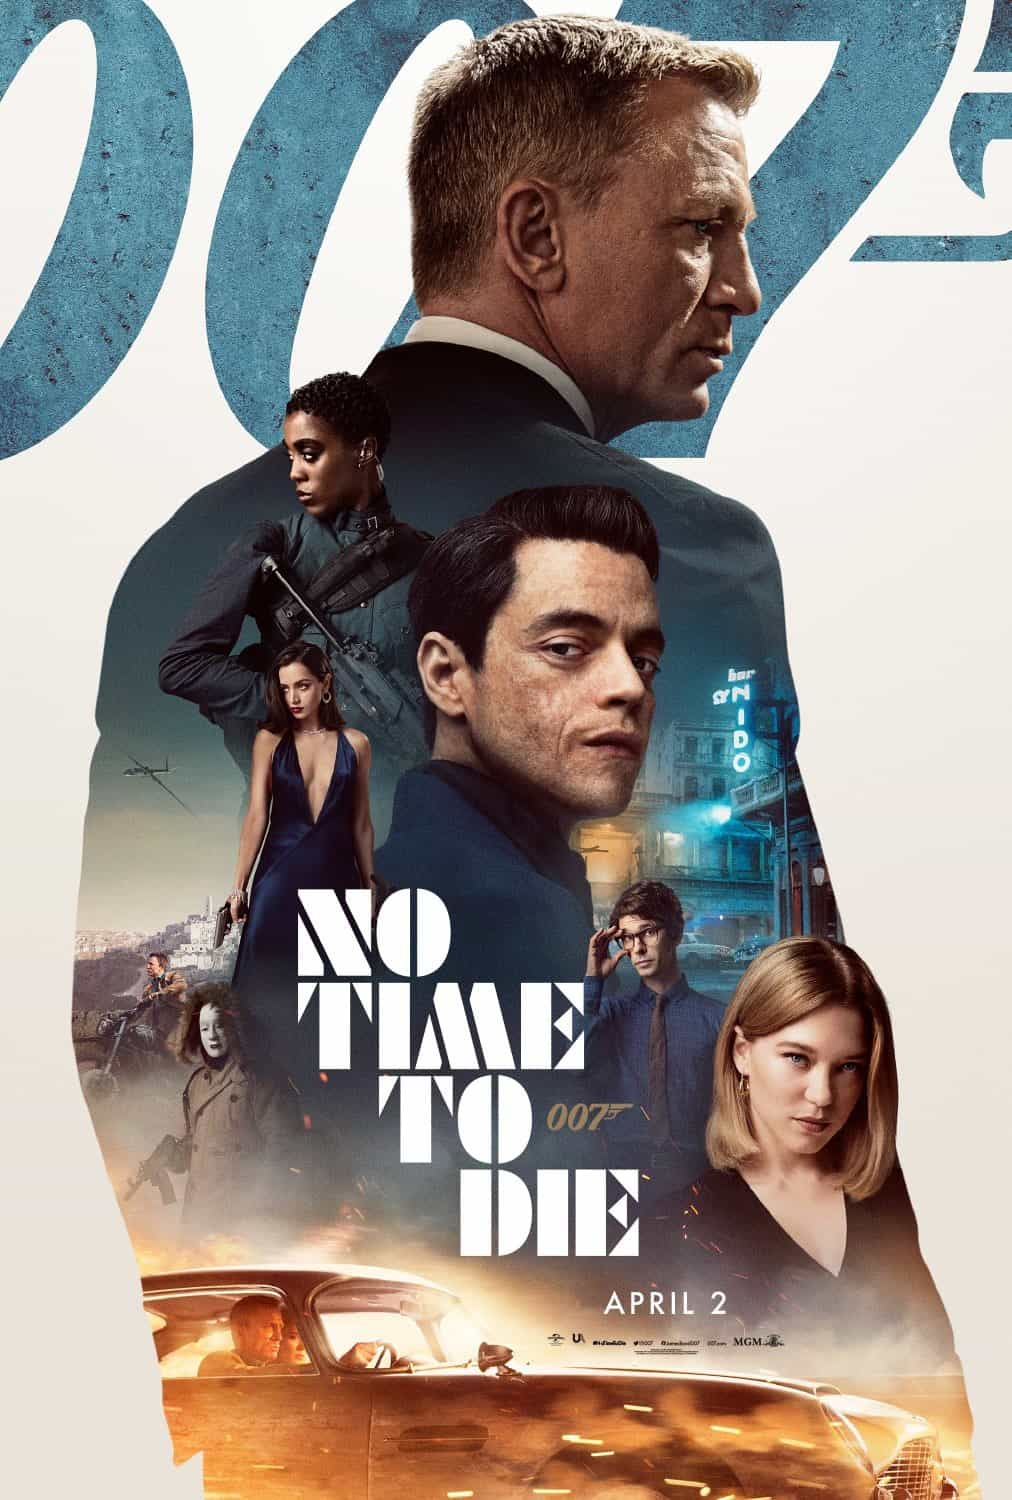 No Time To Die gets moved, again, from April 2nd to October 8th